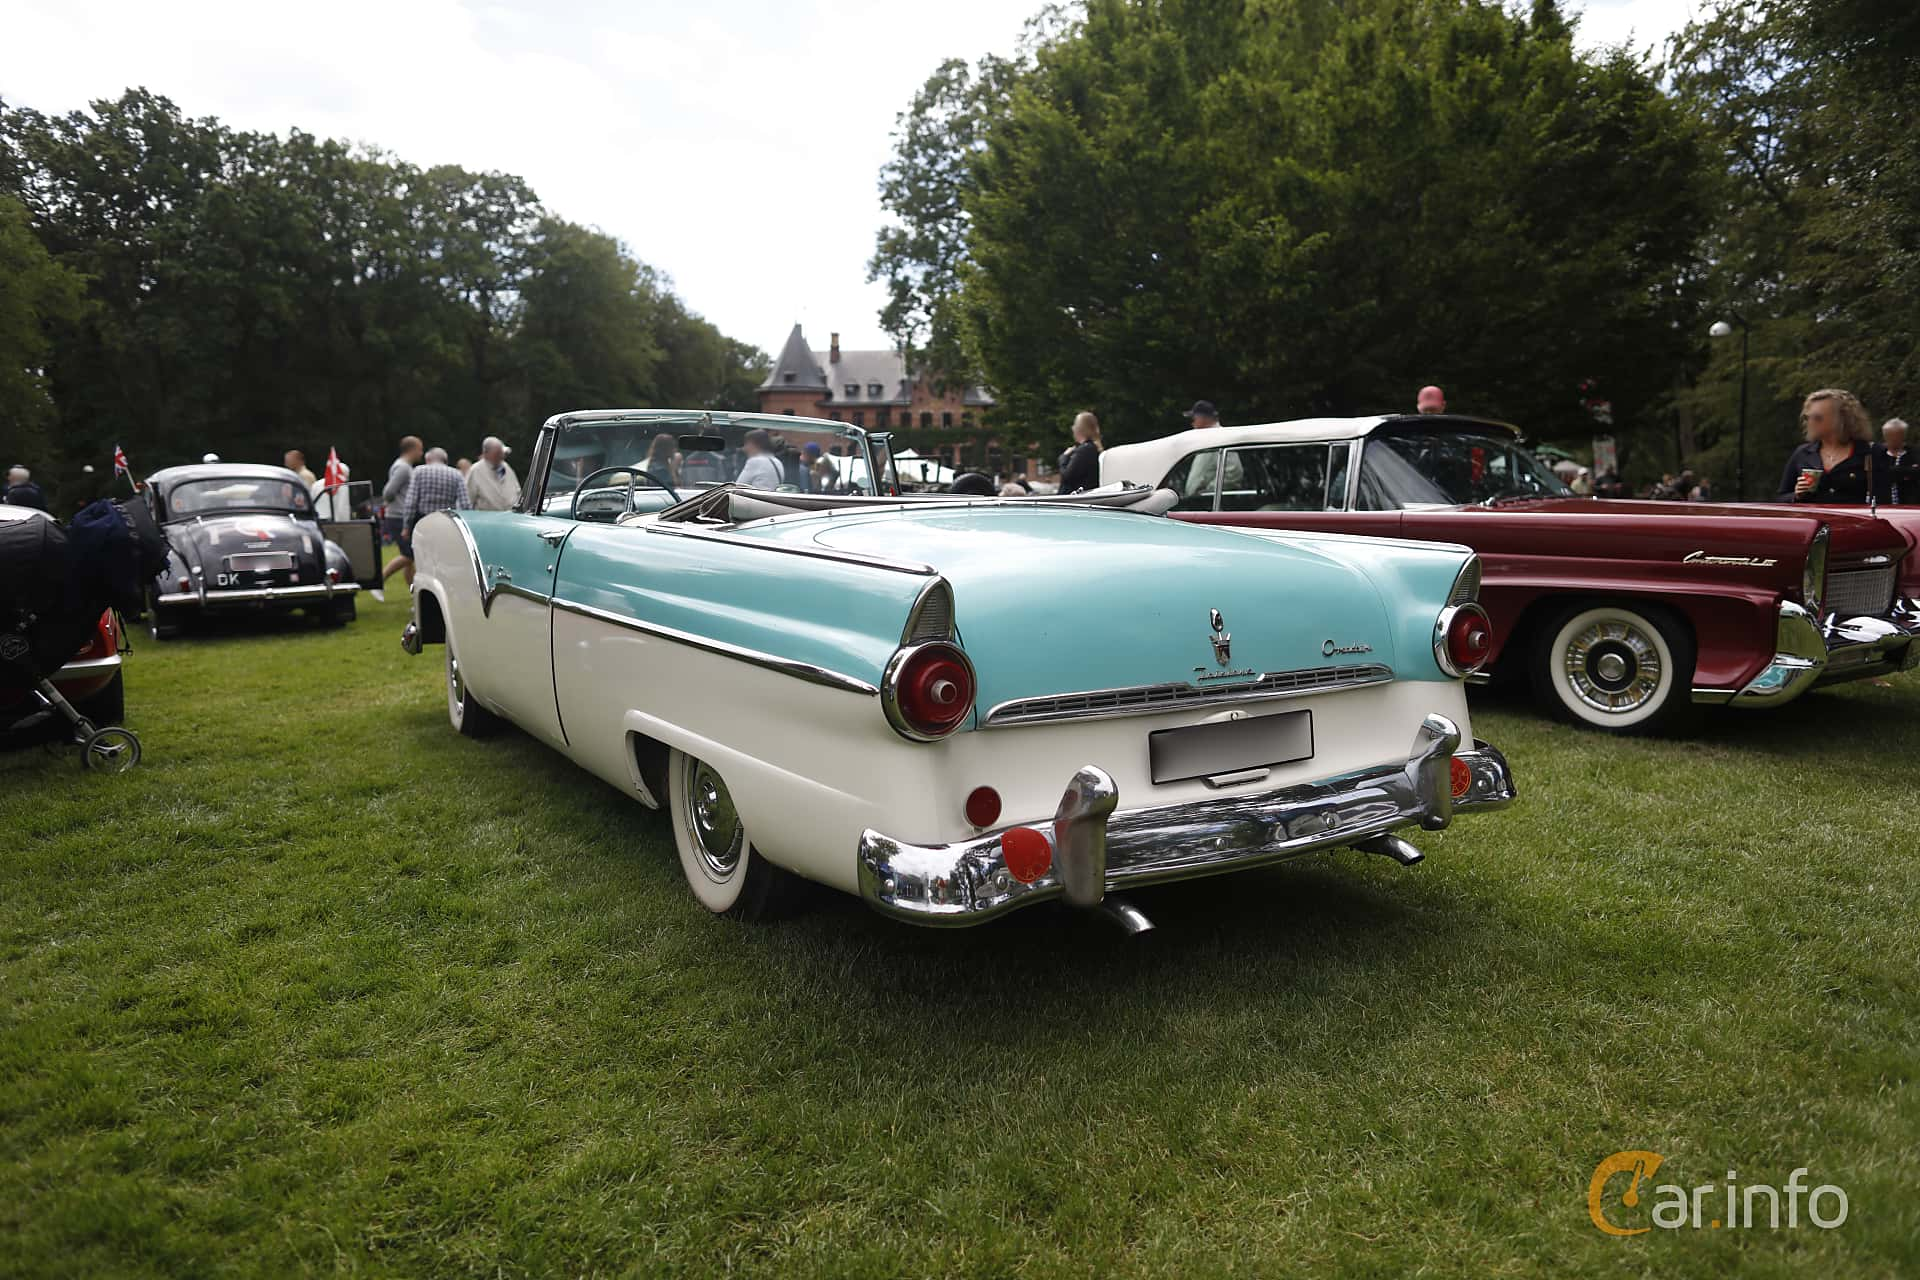 Ford Fairlane Sunliner 4.5 V8 Manual, 165hp, 1955 at Sofiero Classic 2019